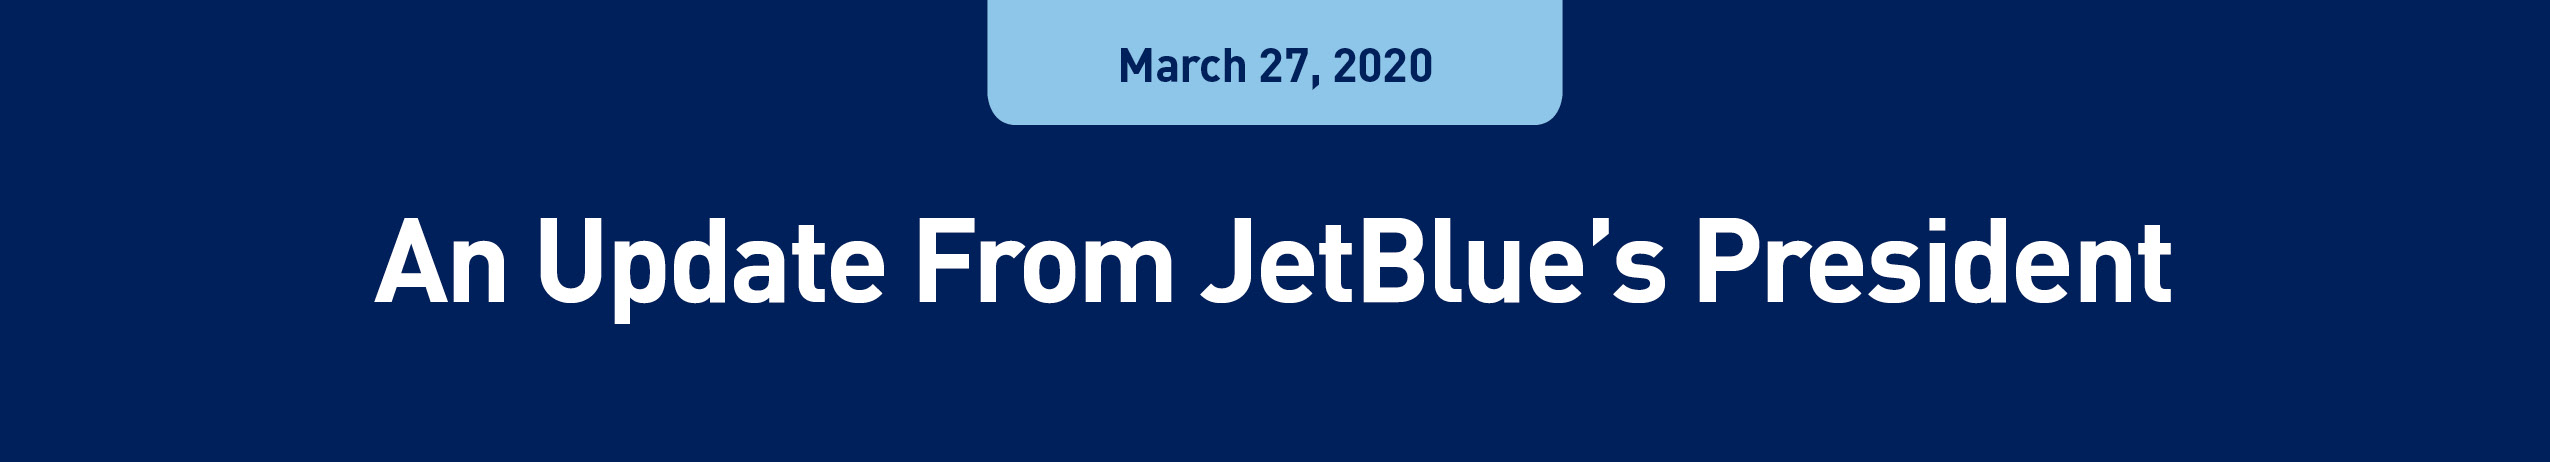 An update from JetBlue's president